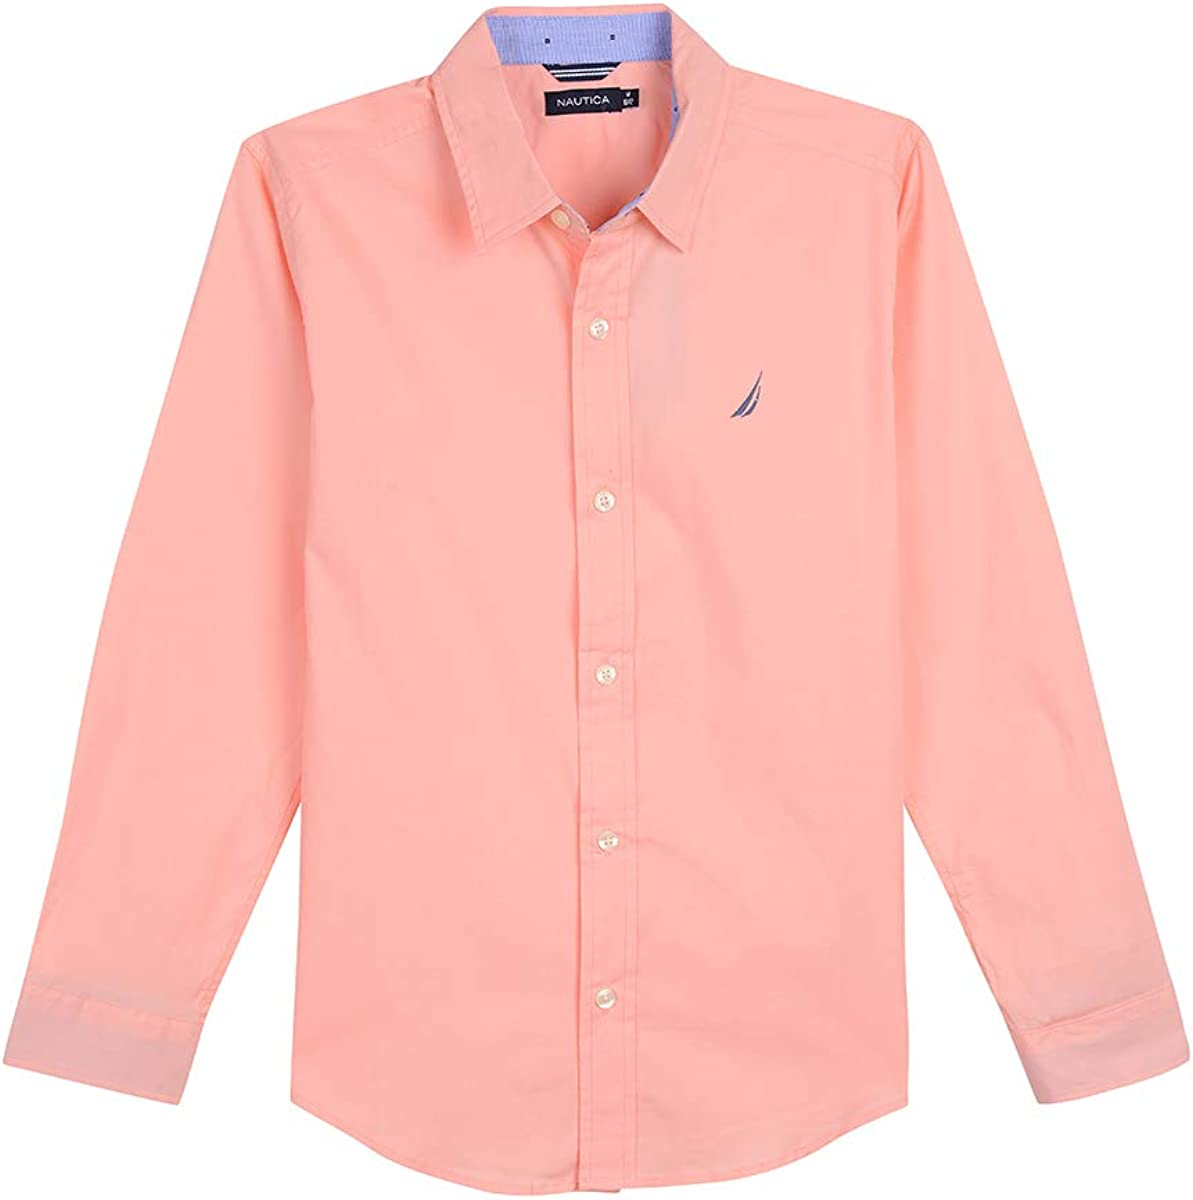 Nautica Boys' Long Sleeve Solid Woven Shirt